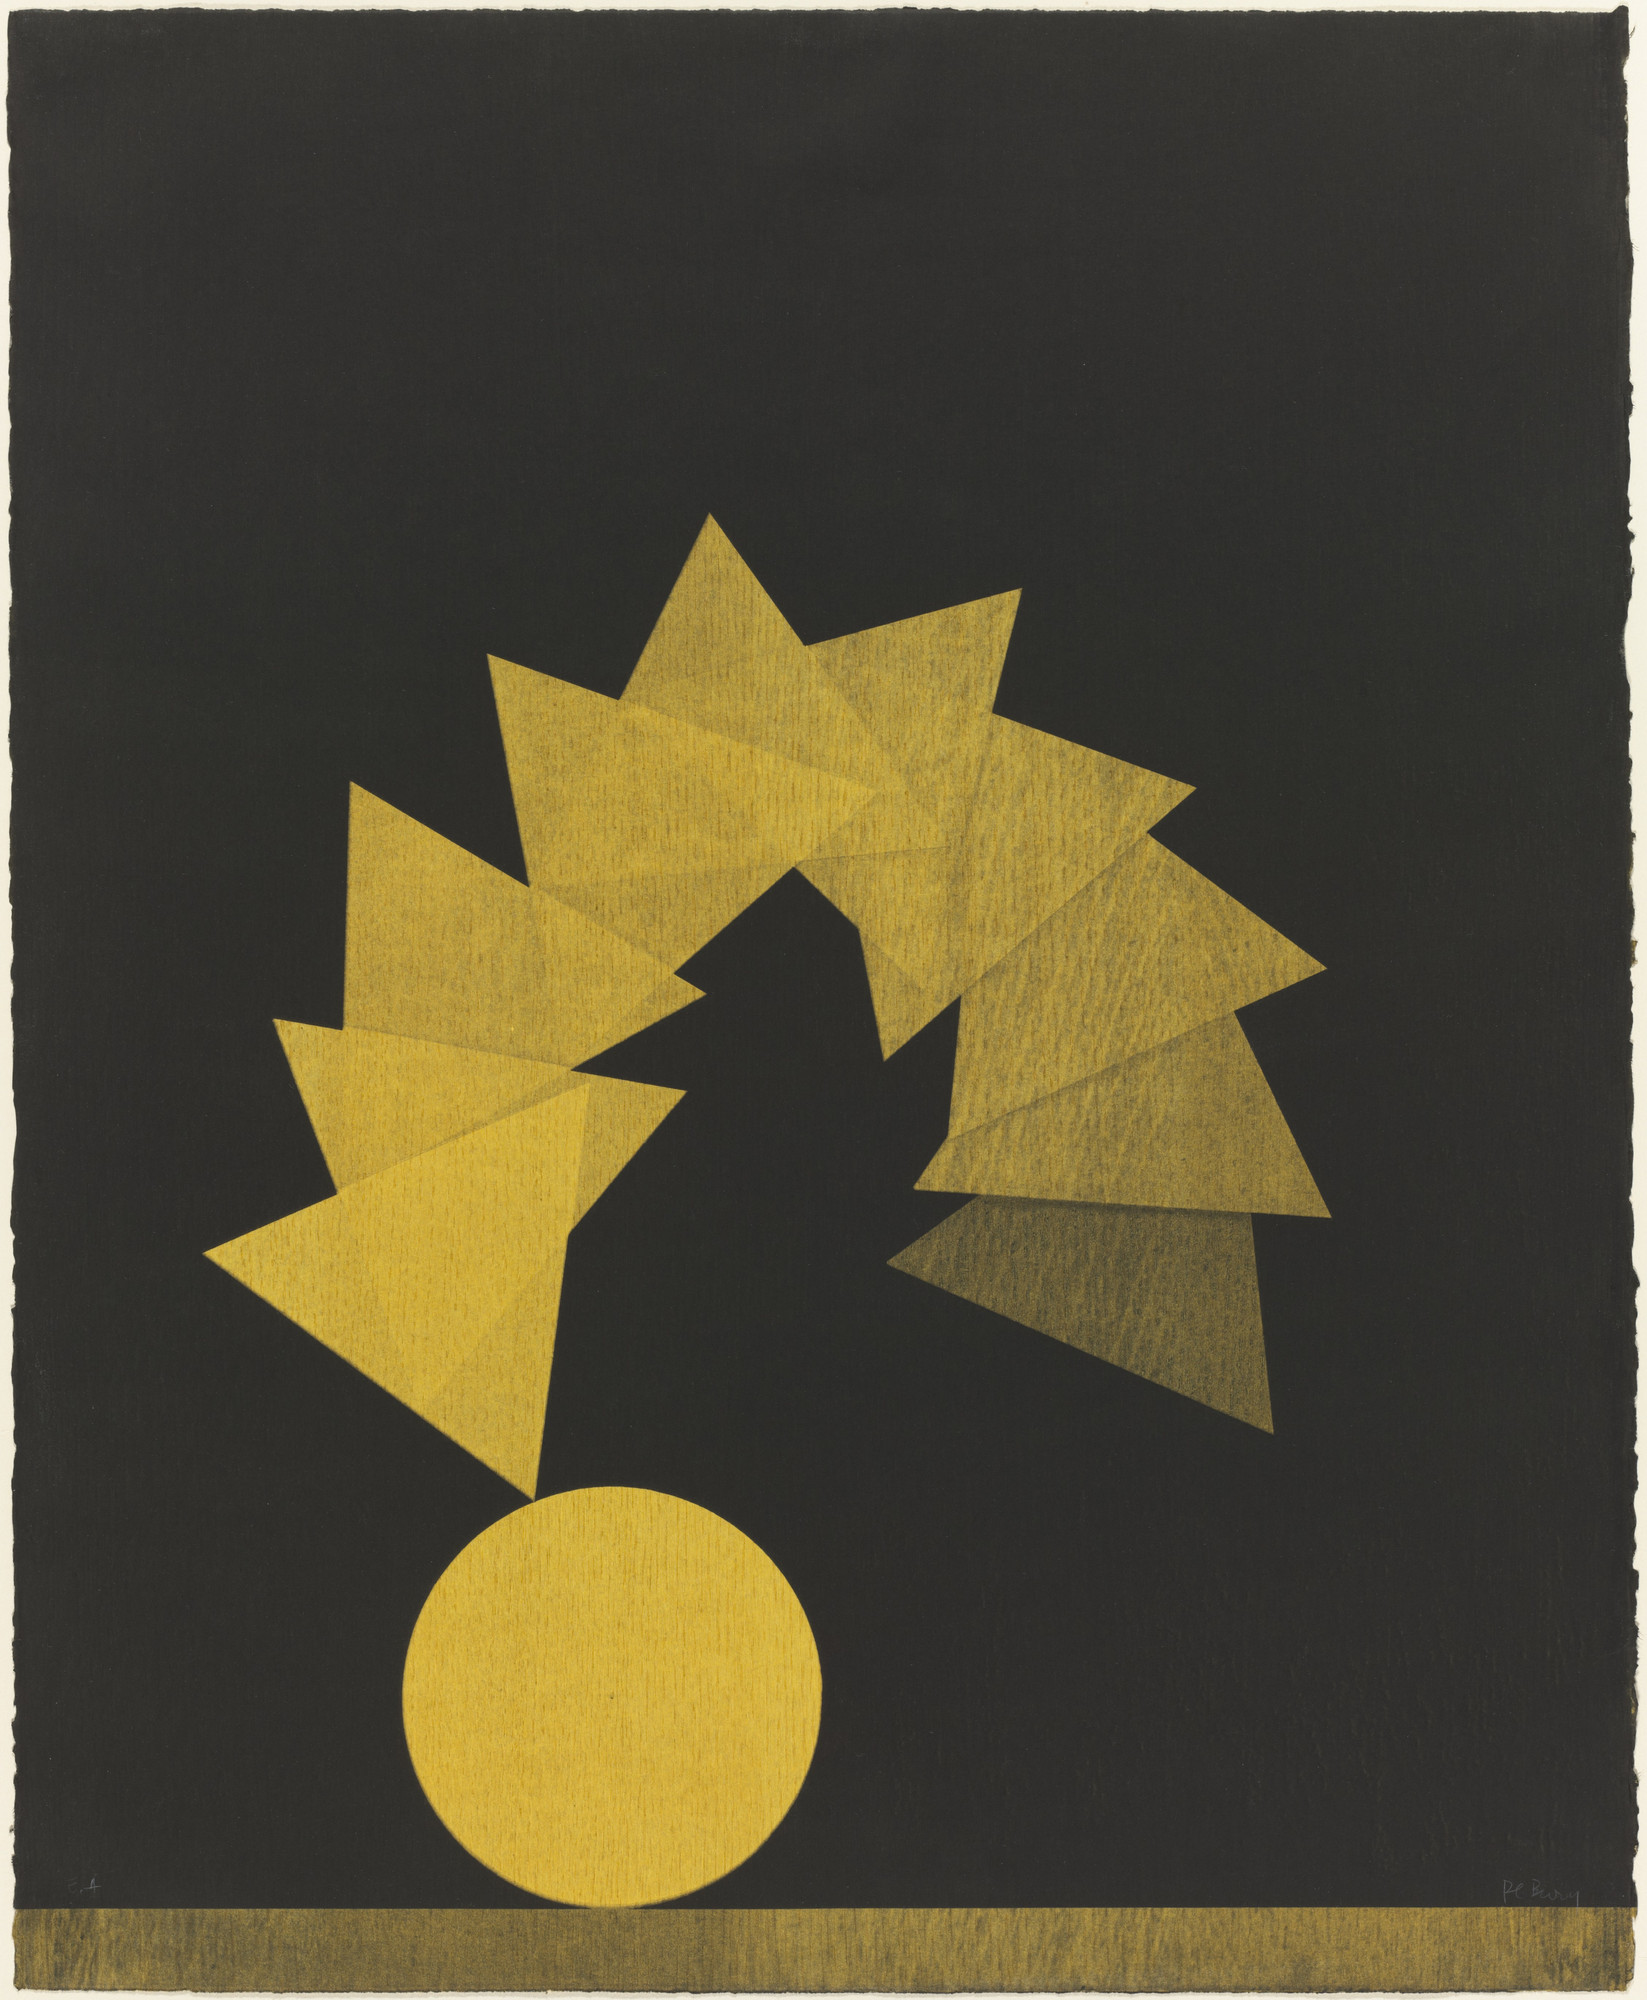 Pol Bury. Circle and Ten Triangles. 1976